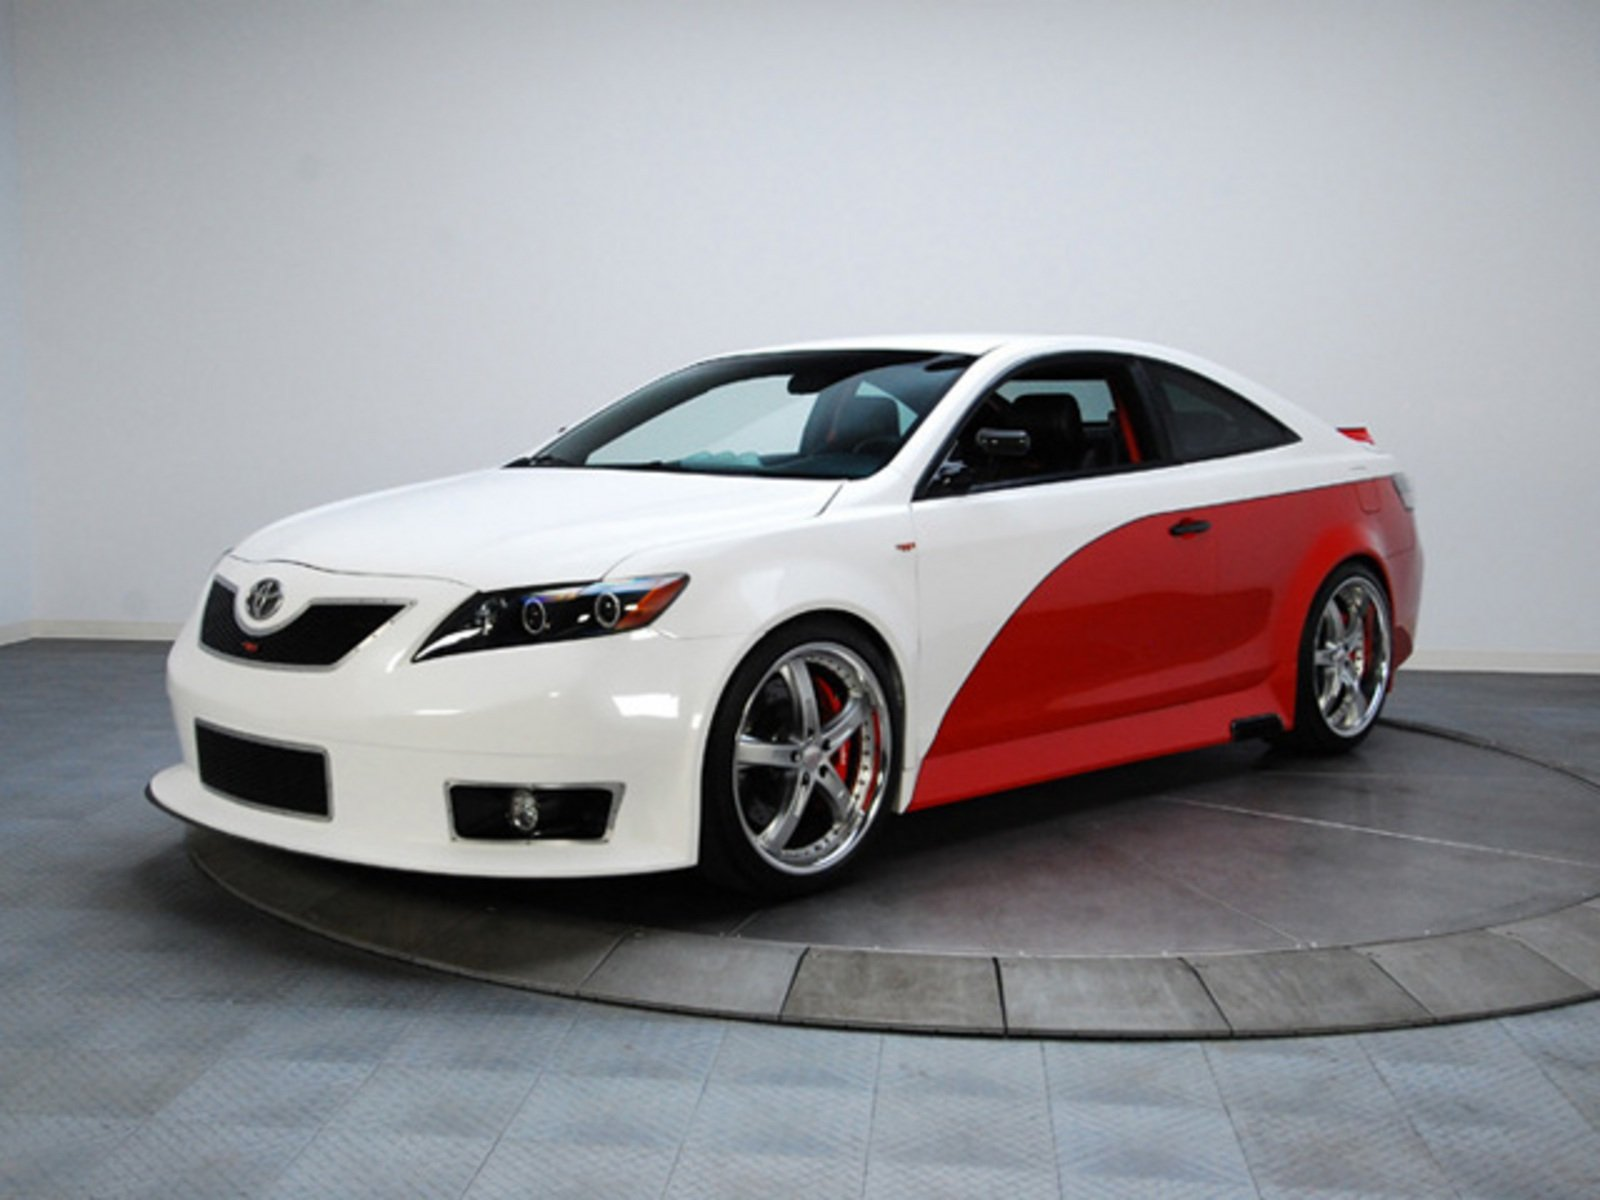 2010 Toyota Camry Nascar Edition By Rk Collection Review